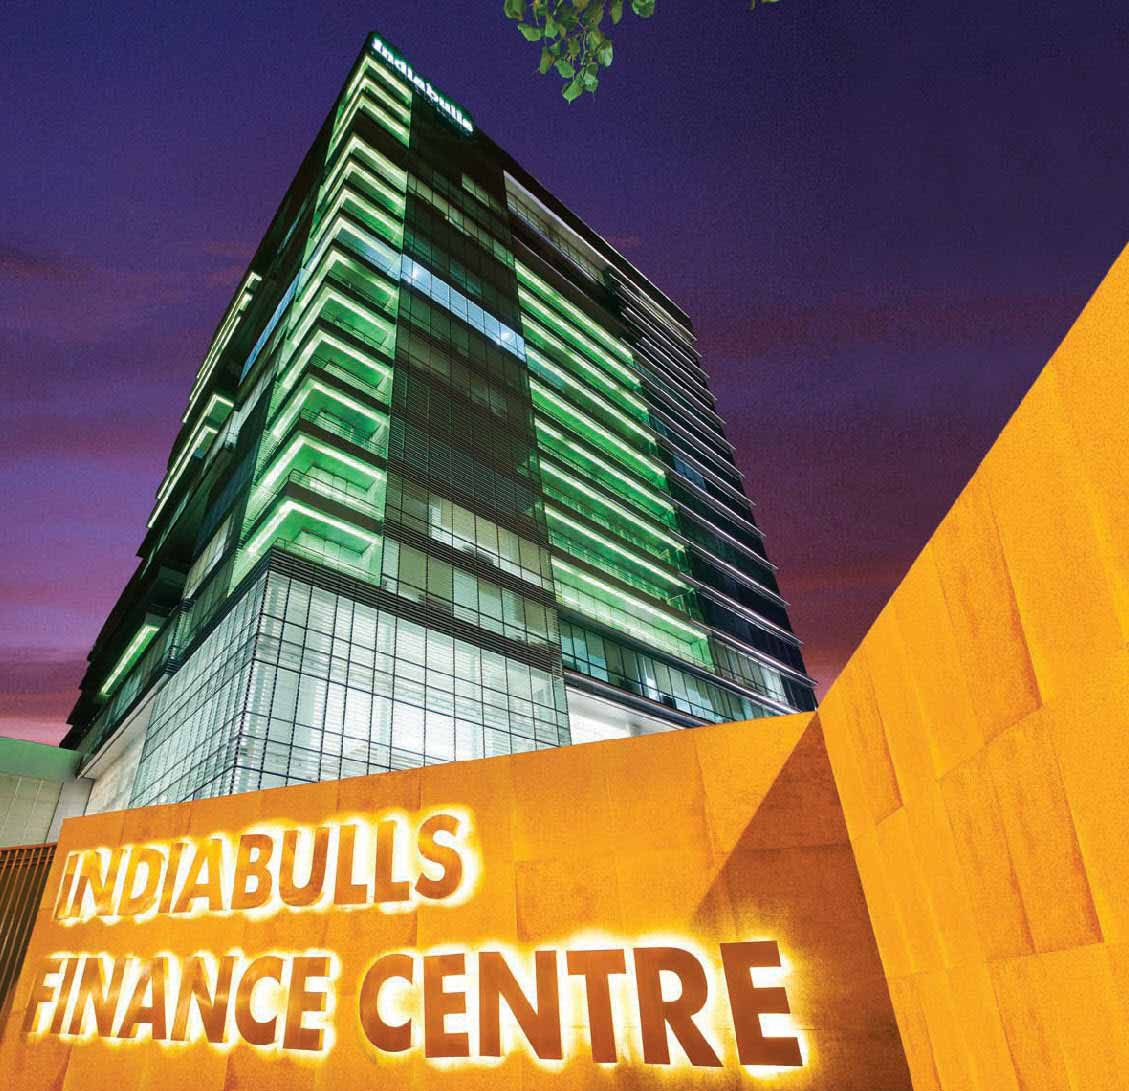 Indiabulls finance centre